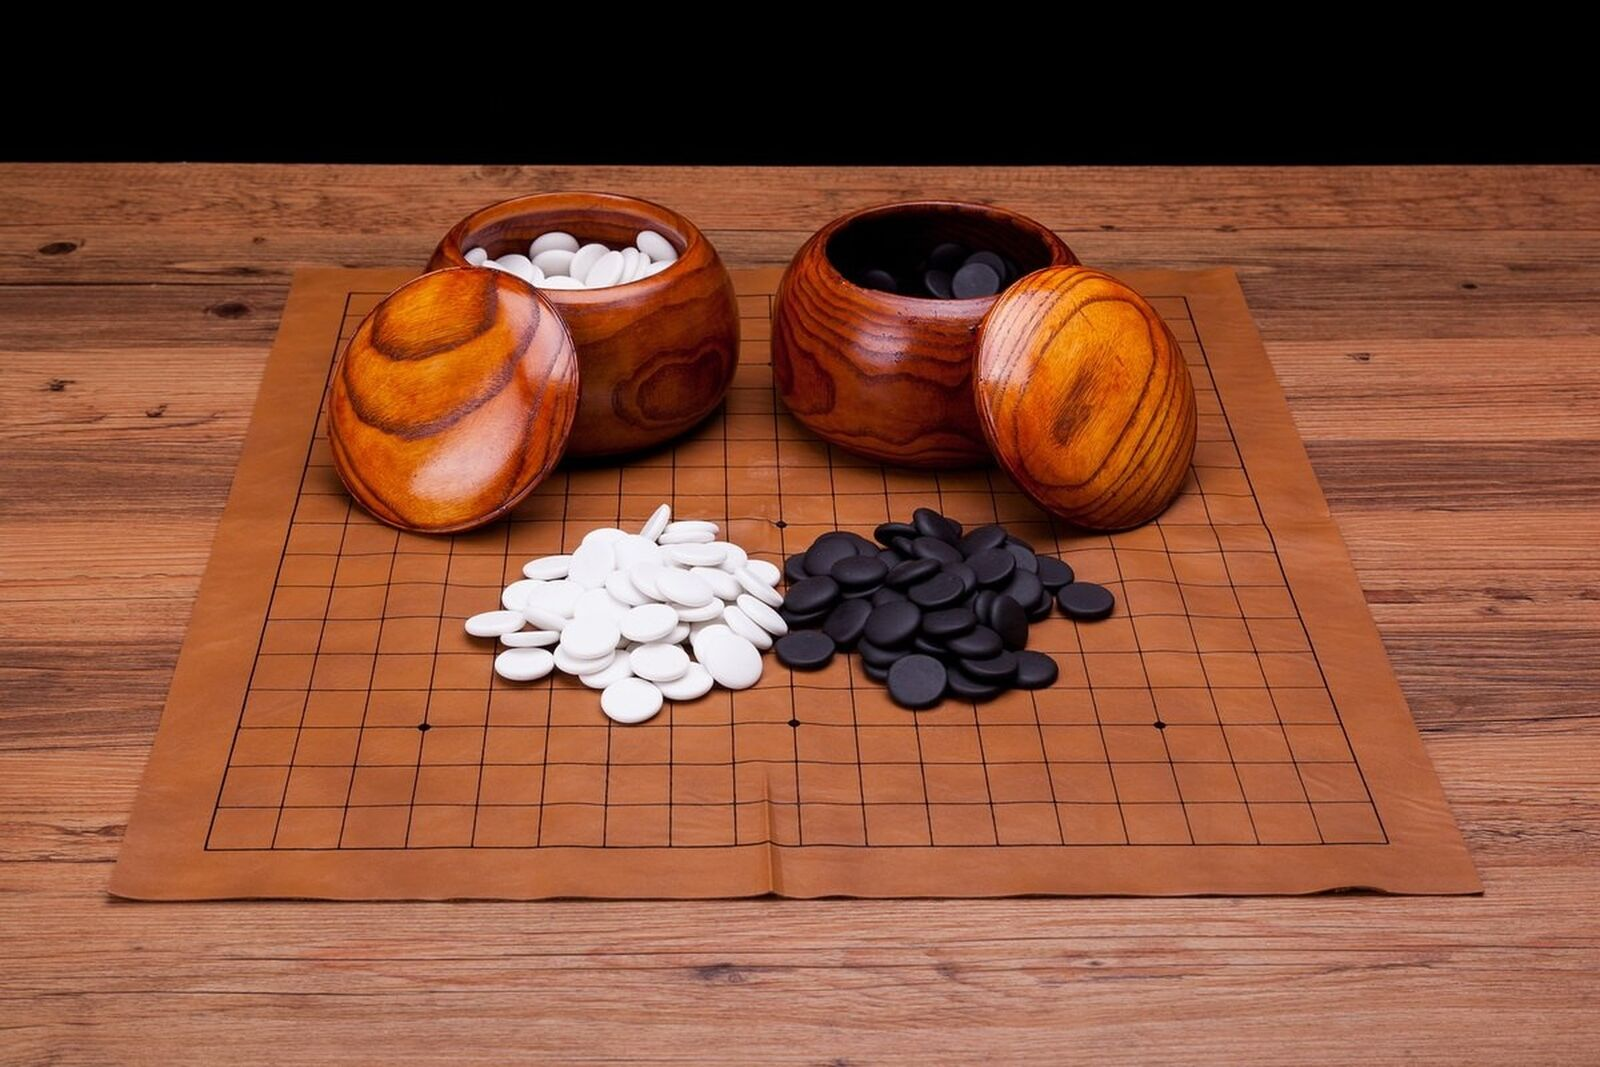 Collectible Wei Qi Go Game Set Melamine Single Convex Stones and Wild Jujube